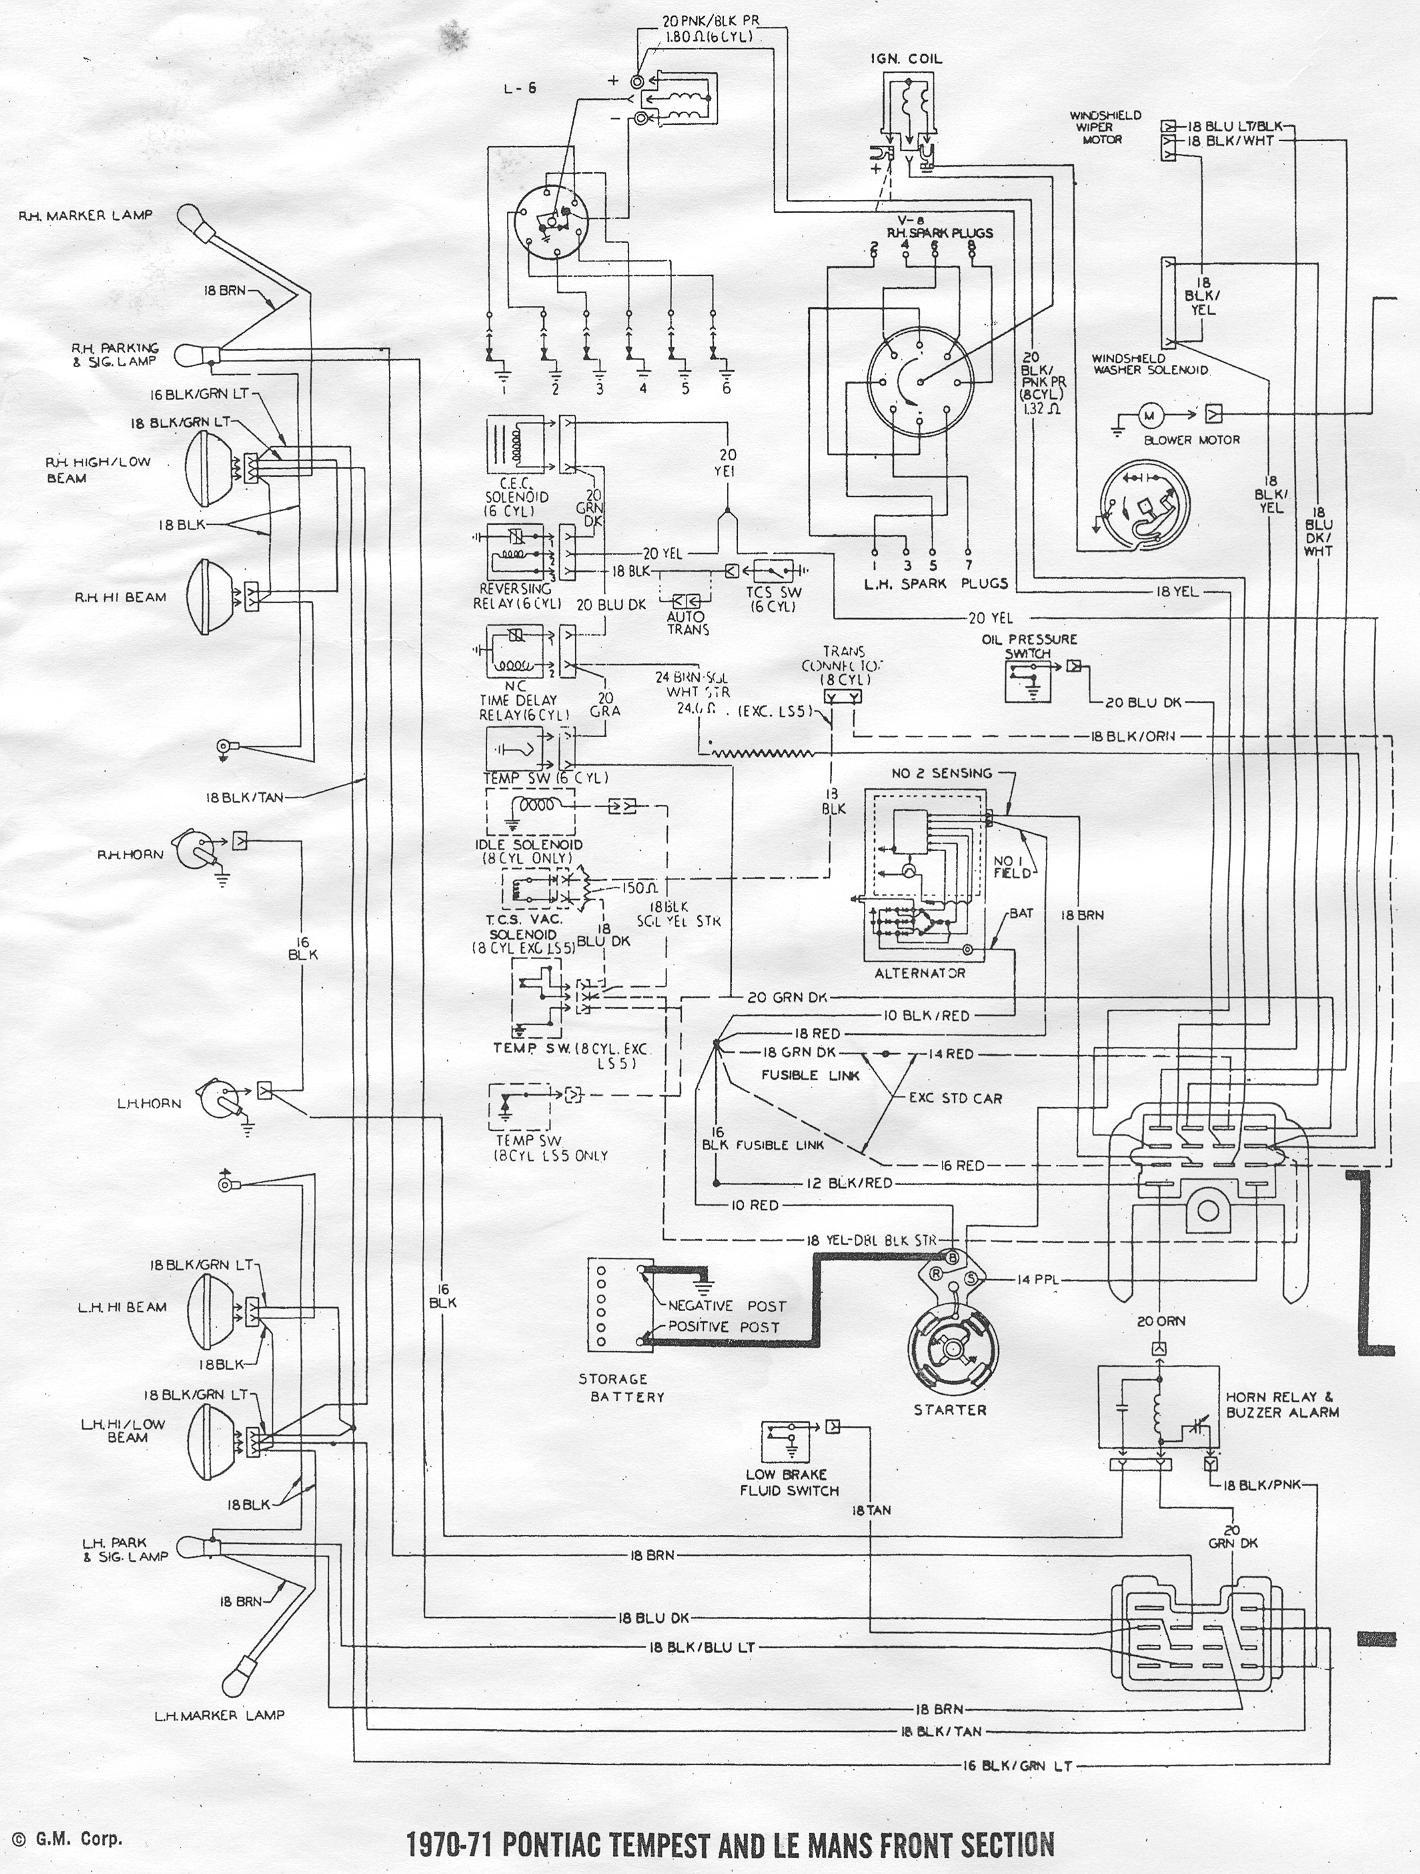 1966 Chrysler 300 Wiring Diagram Images Rack Oldsmobile Diagrams